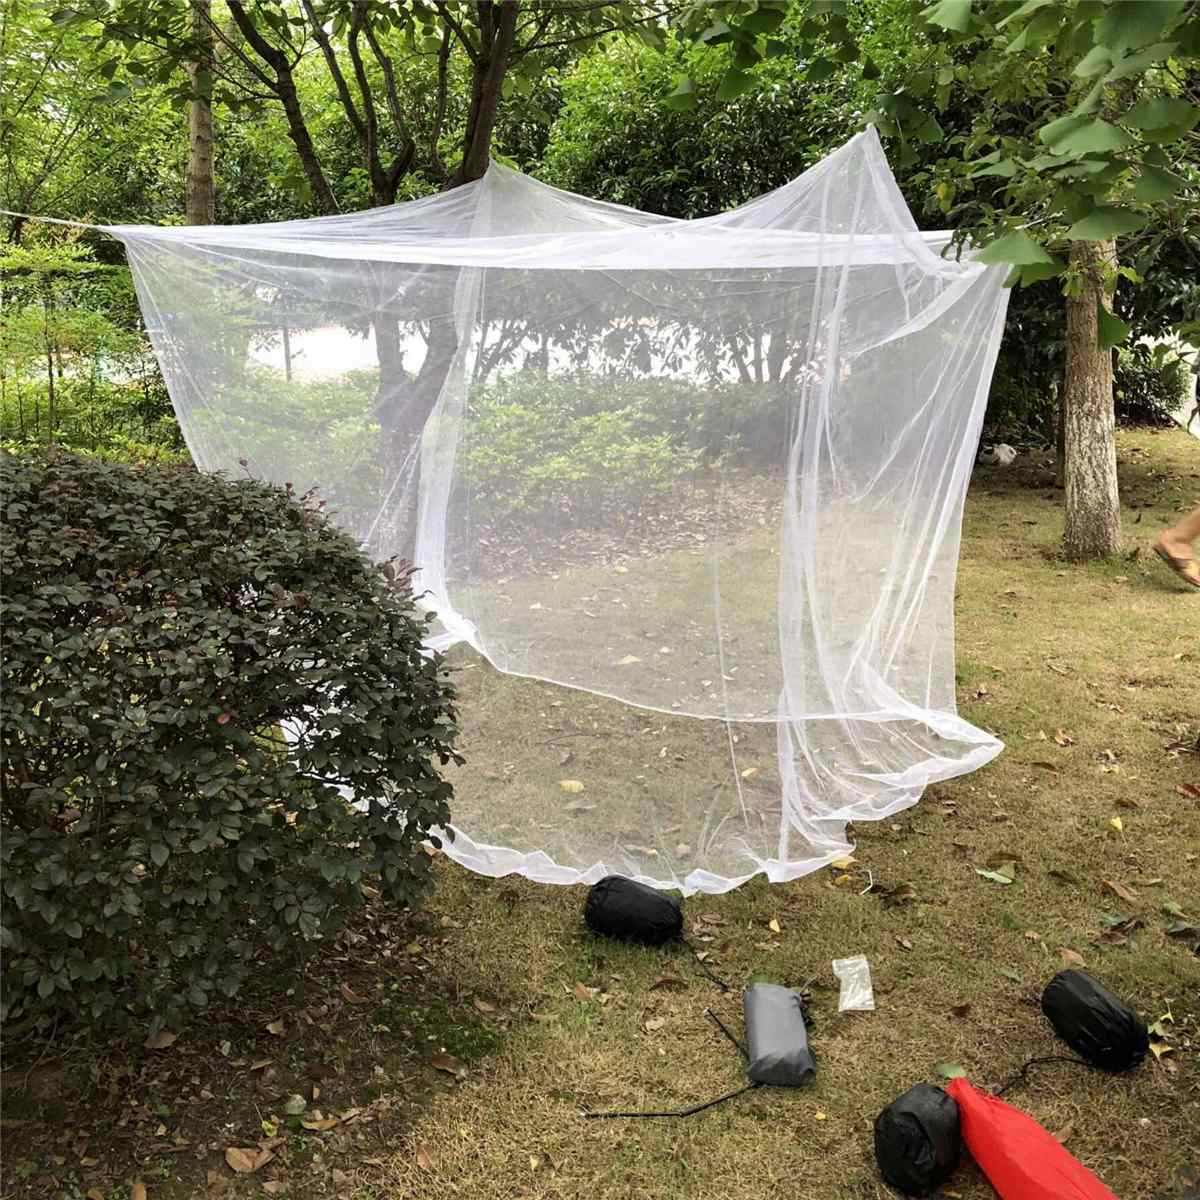 200x200x180cm Travel Camping Mosquito Net Repellent Tent Insect Reject Canopy Bed Curtain Bed Tent